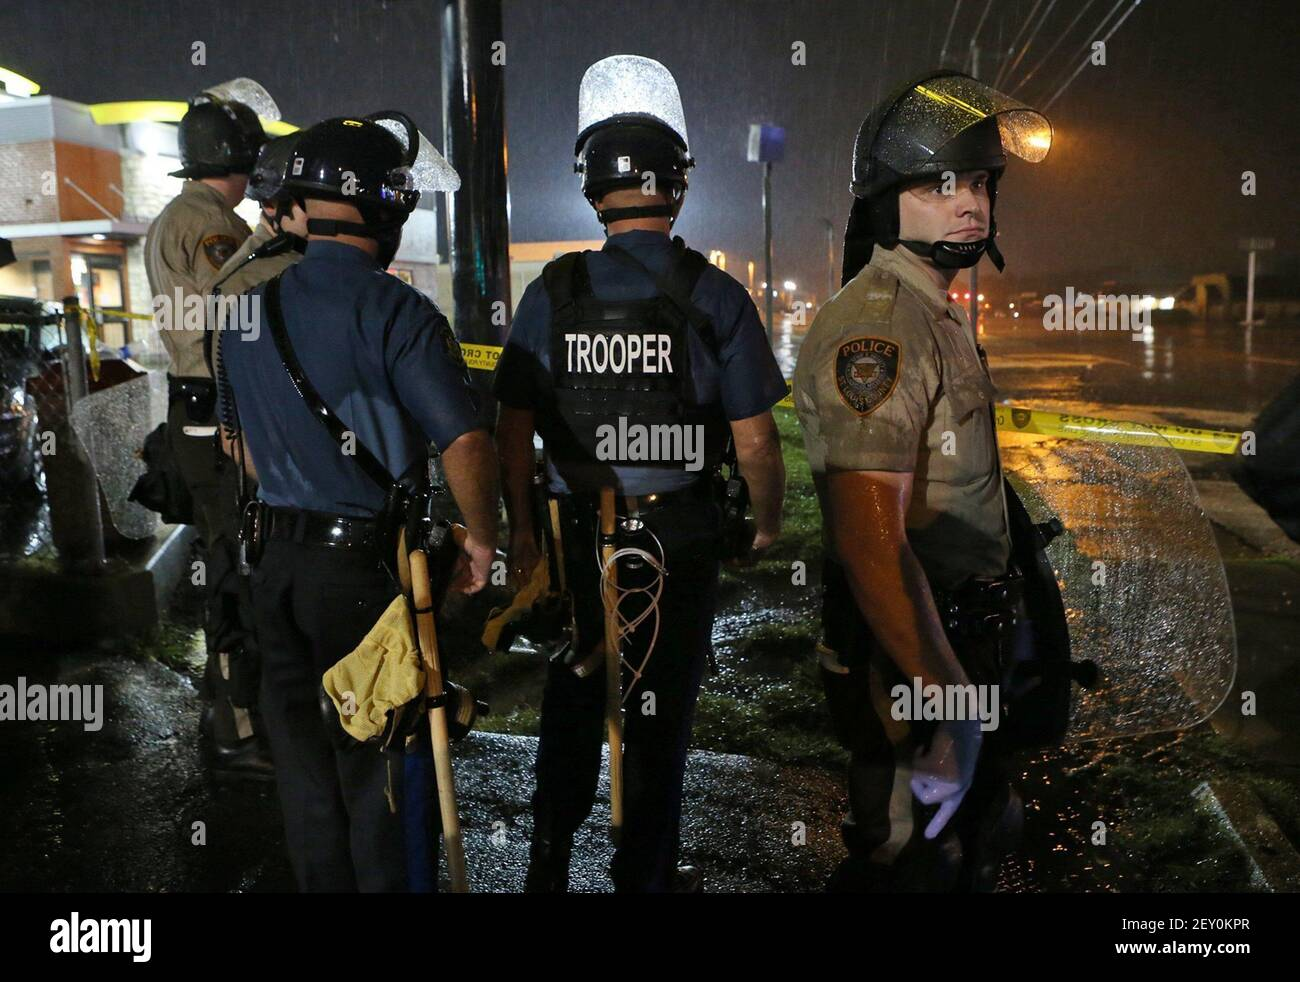 Missouri Highway Patrol officers and St. Louis County police stand at the ready in the rain next to the McDonald's on West Florissant Avenue in Ferguson, Mo., on Saturday, Aug. 16, 2014, several minutes after the curfew started at midnight. Most people on the south end of West Florissant in the containment area complied with the curfew. (Photo by J.B. Forbes/St. Louis Post-Dispatch/MCT/Sipa USA) Stock Photo